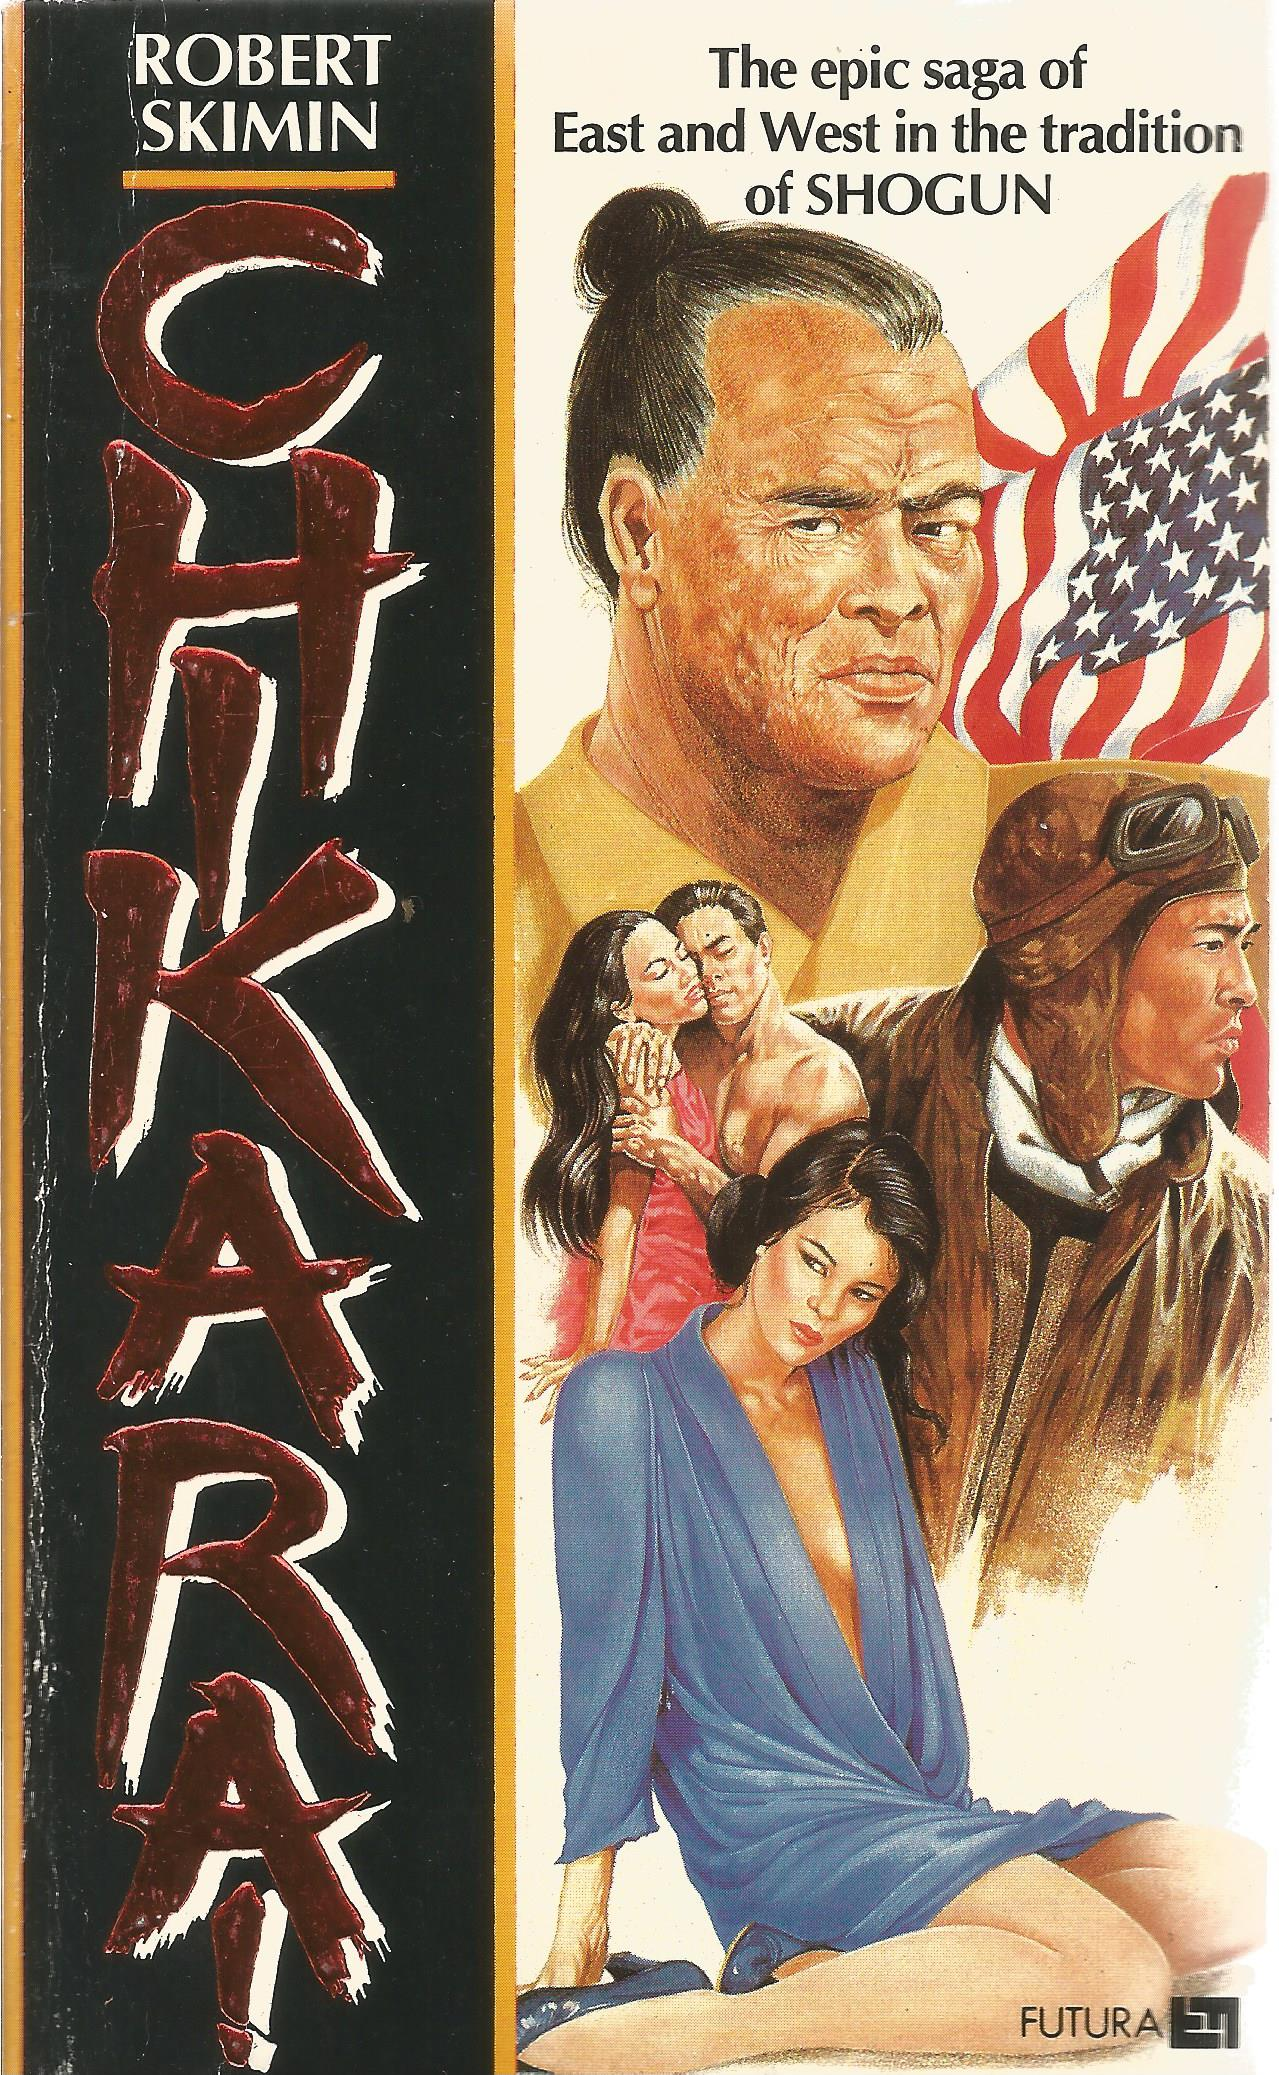 Robert Skimin Paperback Book The epic saga of East and W in the Tradition of Shogun signed by the